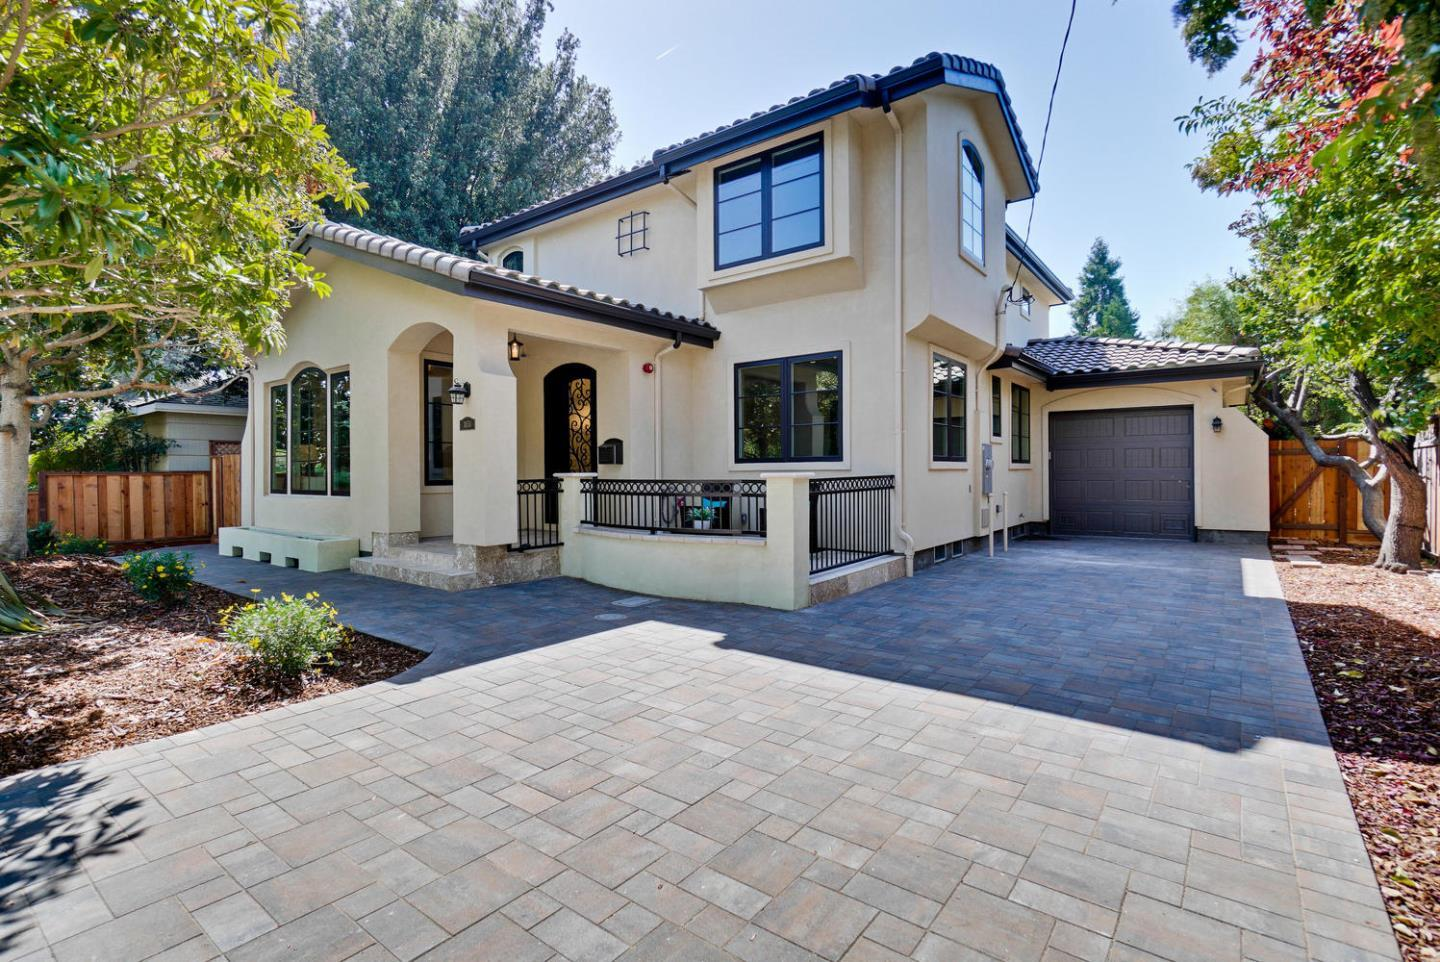 Detail Gallery Image 1 of 20 For 3650 Ross Rd, Palo Alto, CA, 94303 - 5 Beds | 3/1 Baths